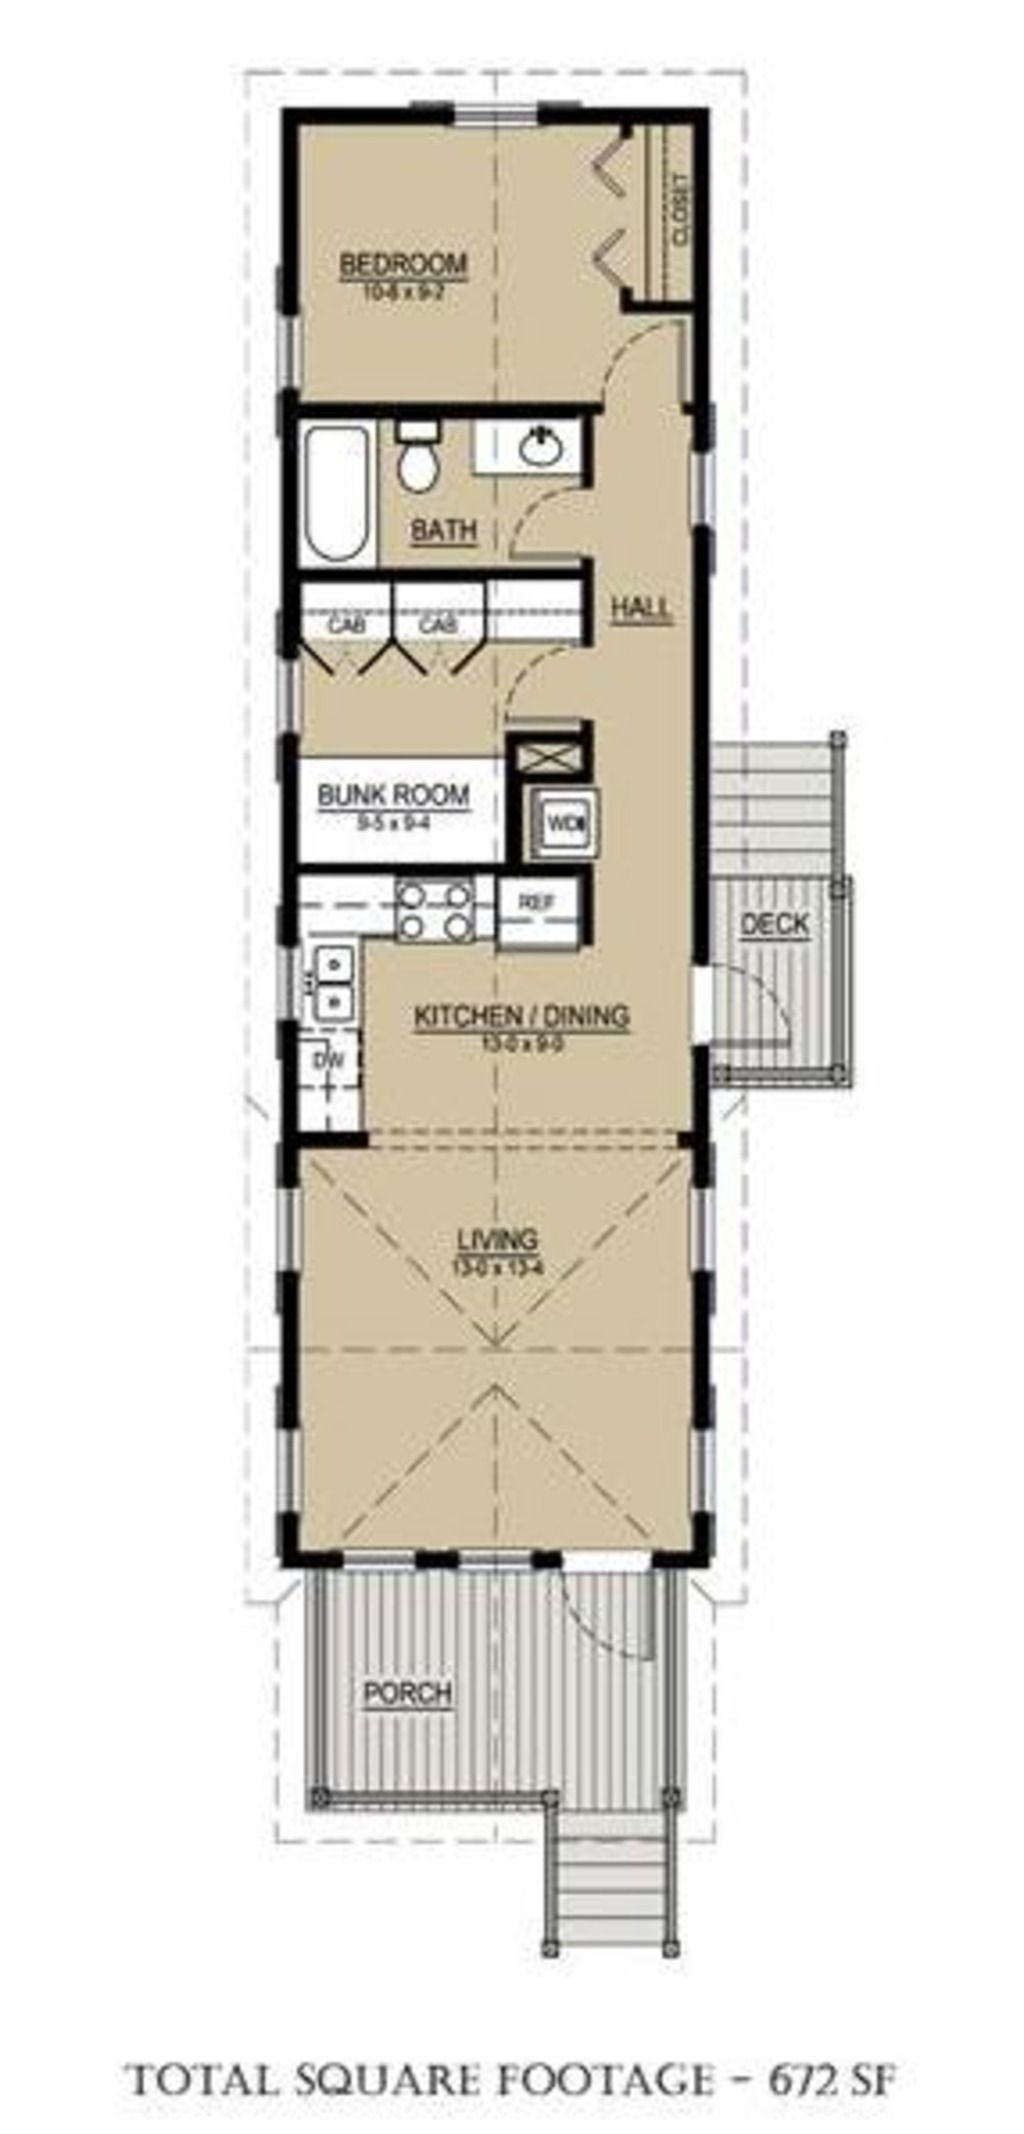 House Plans For Narrow Lots narrow houase plan google otsing inspiratsiooniks pinterest narrow lot house plans house plans and salems lot Narrow Houase Plan Google Otsing Inspiratsiooniks Pinterest Narrow Lot House Plans House Plans And Salems Lot